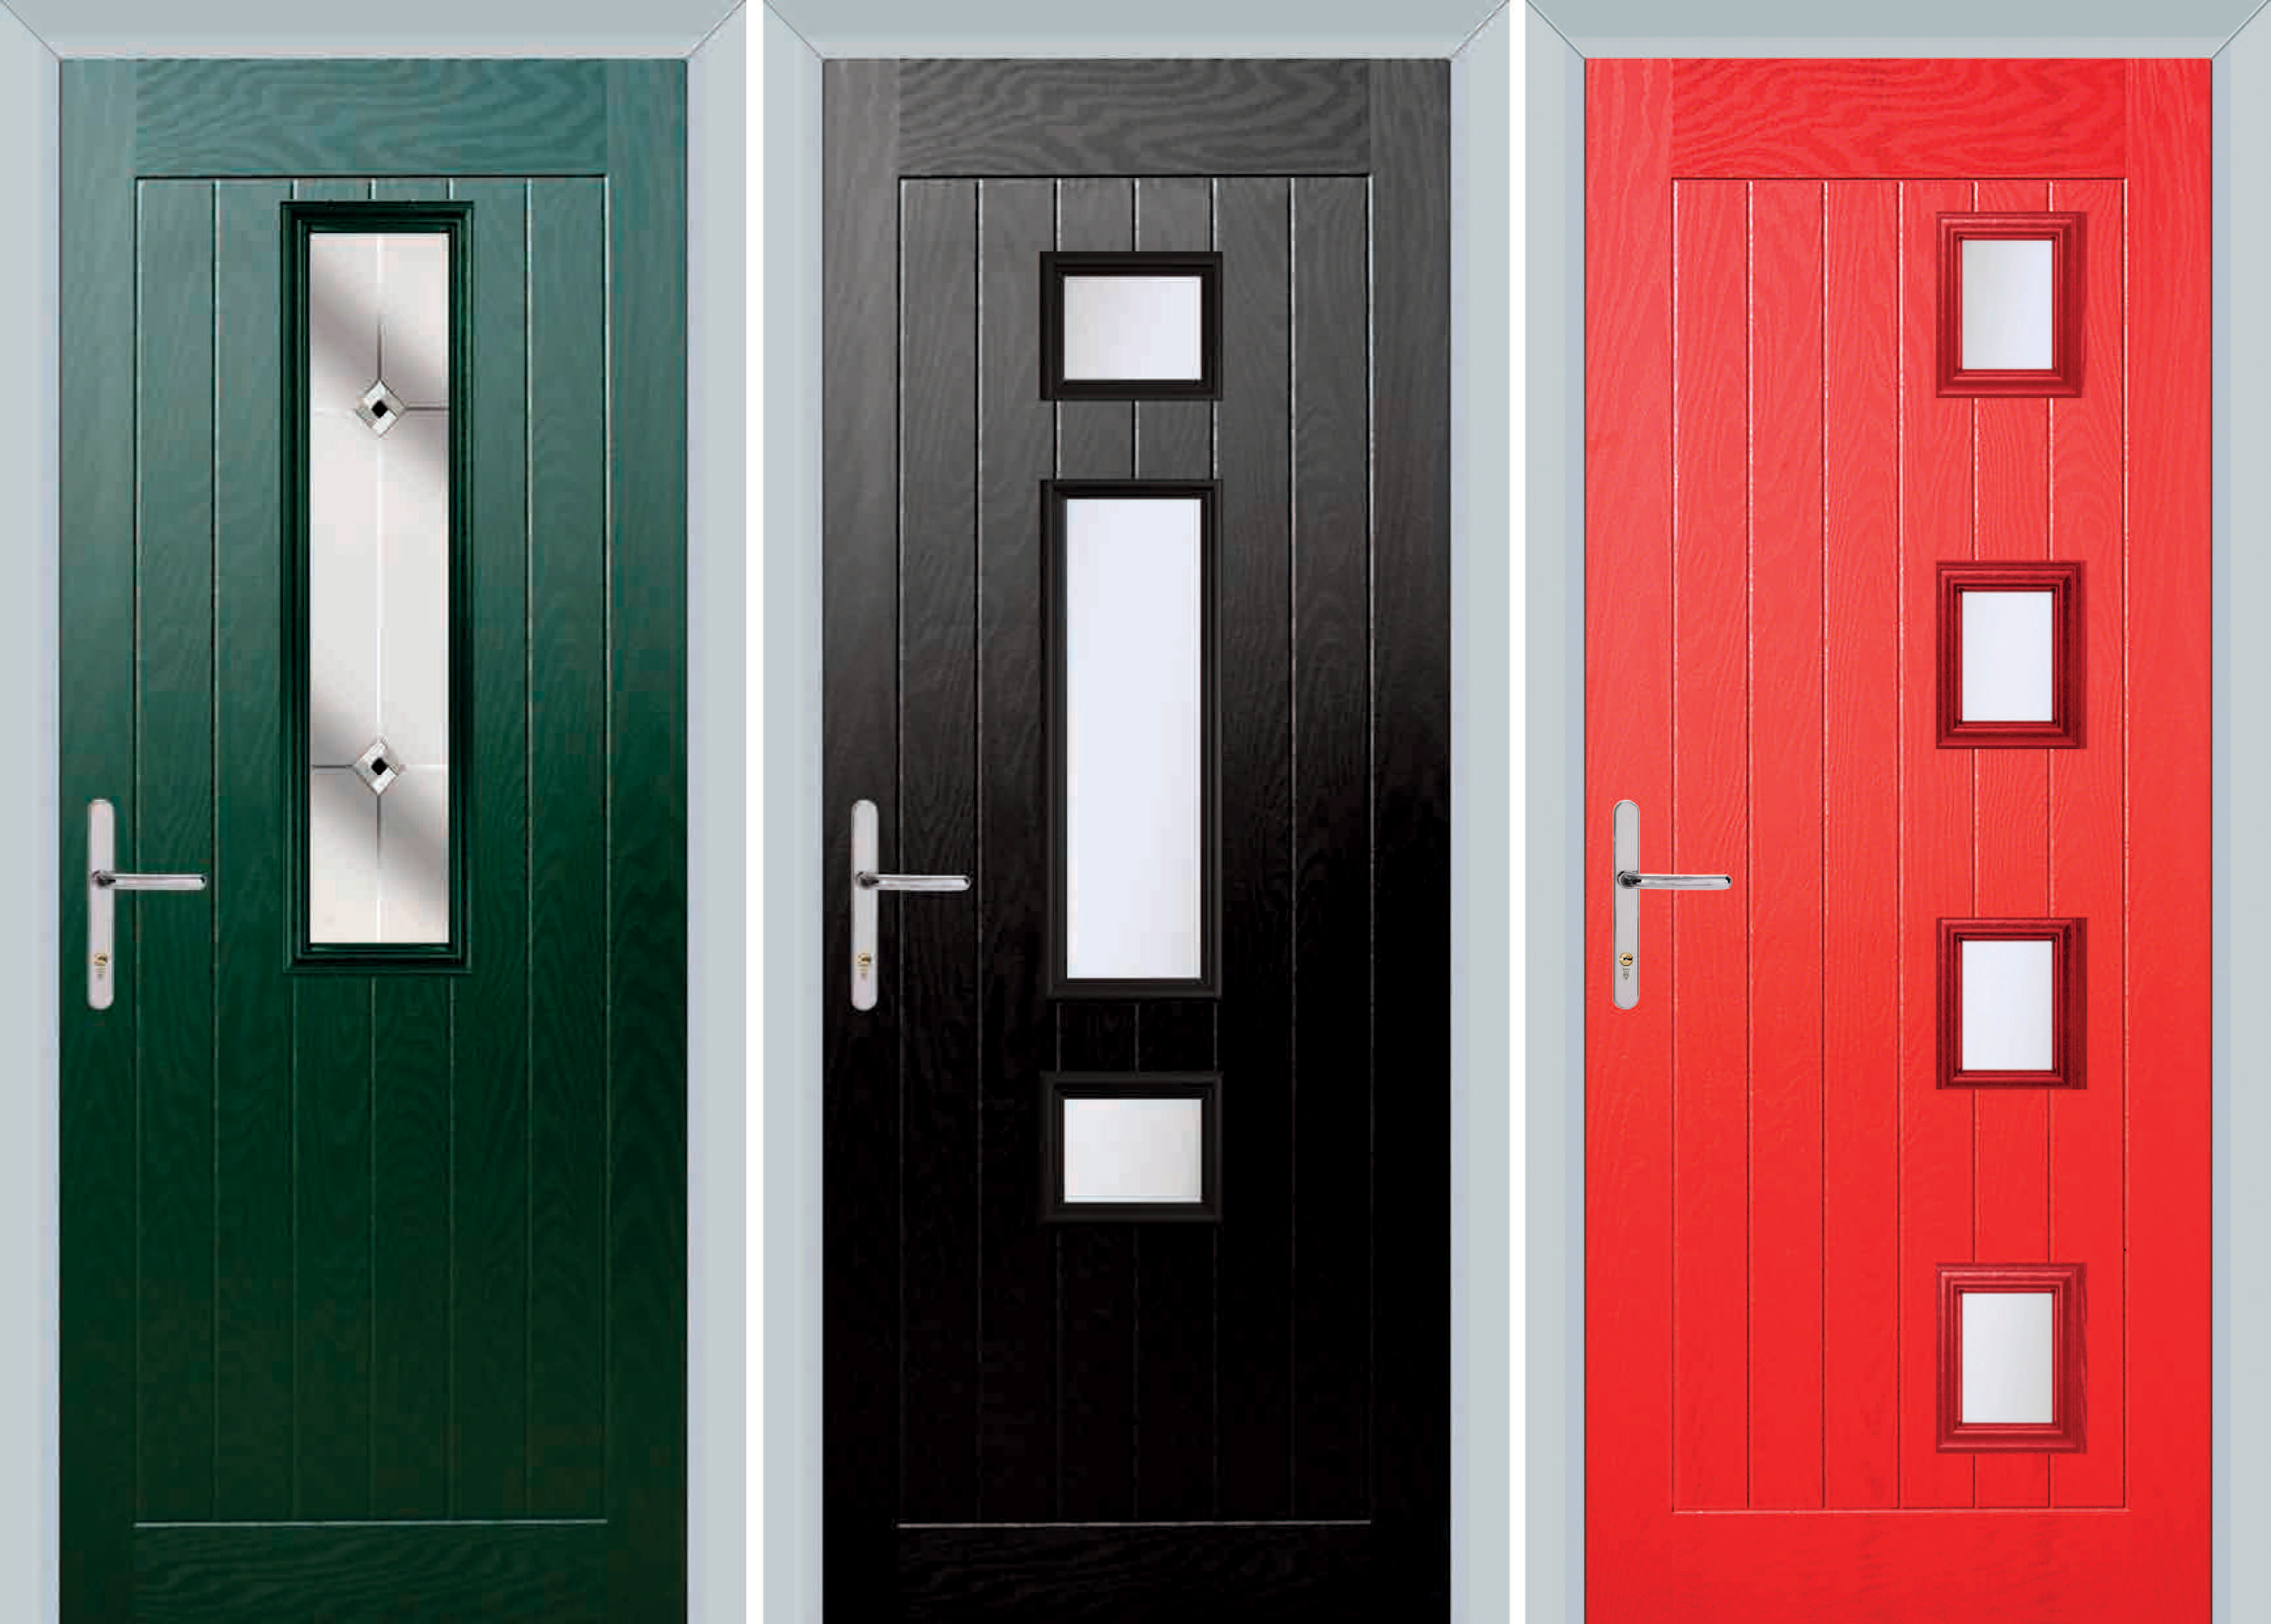 New Door Designs Mean More Choice For Homeowners Residor